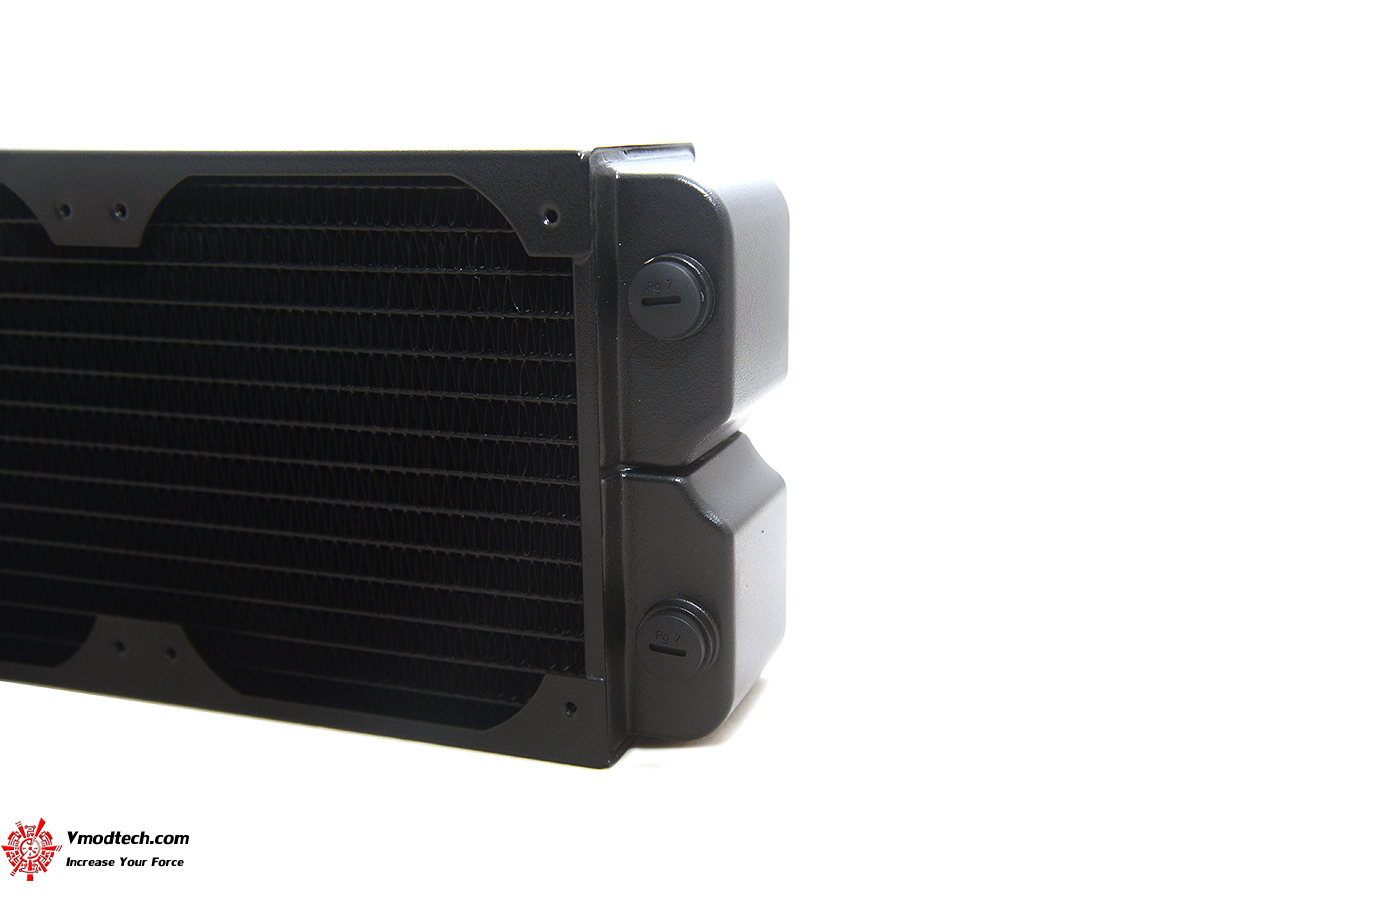 dsc 7703 Thermaltake Pacific CL360 Radiator Review